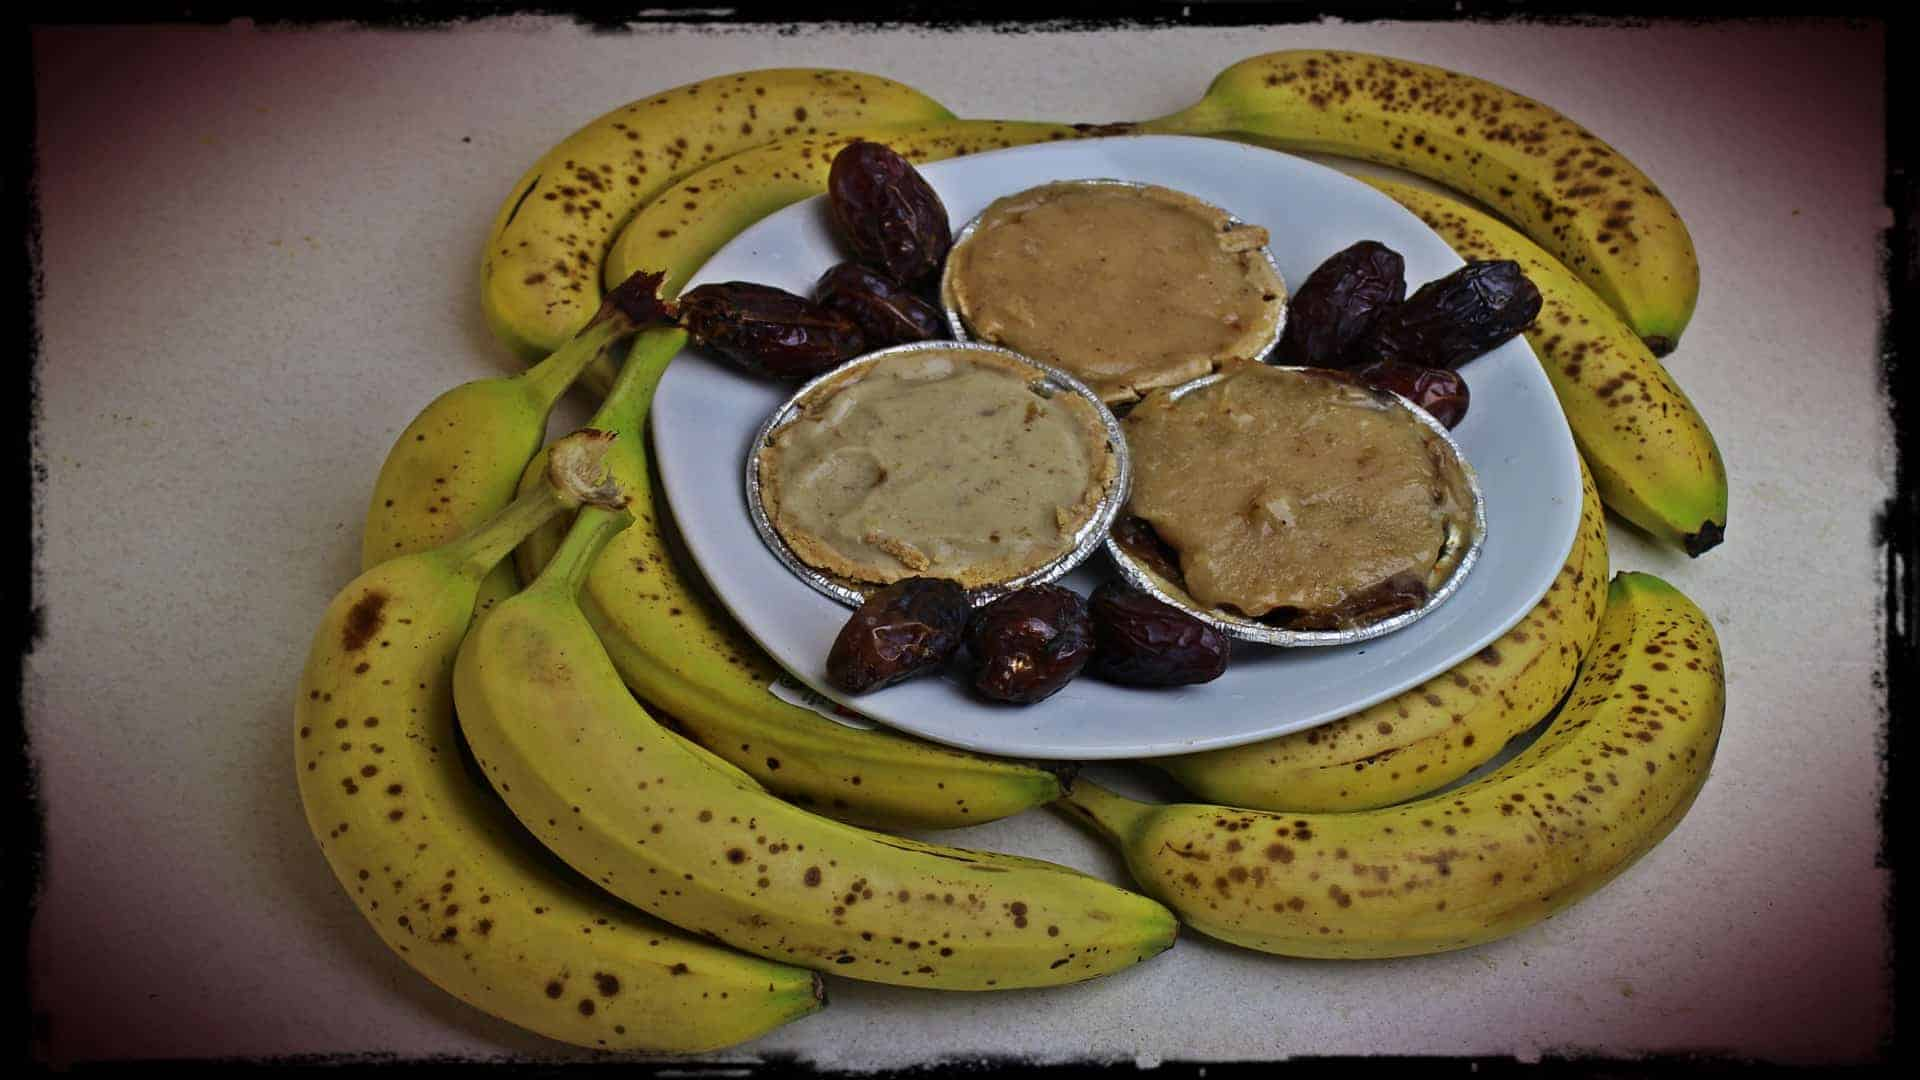 A number of ripe bananas are seen surround I white plate. Upon the plate, in aluminium tins are three delicious looking banana and date pies. The plate is also decorated with a few full dates.